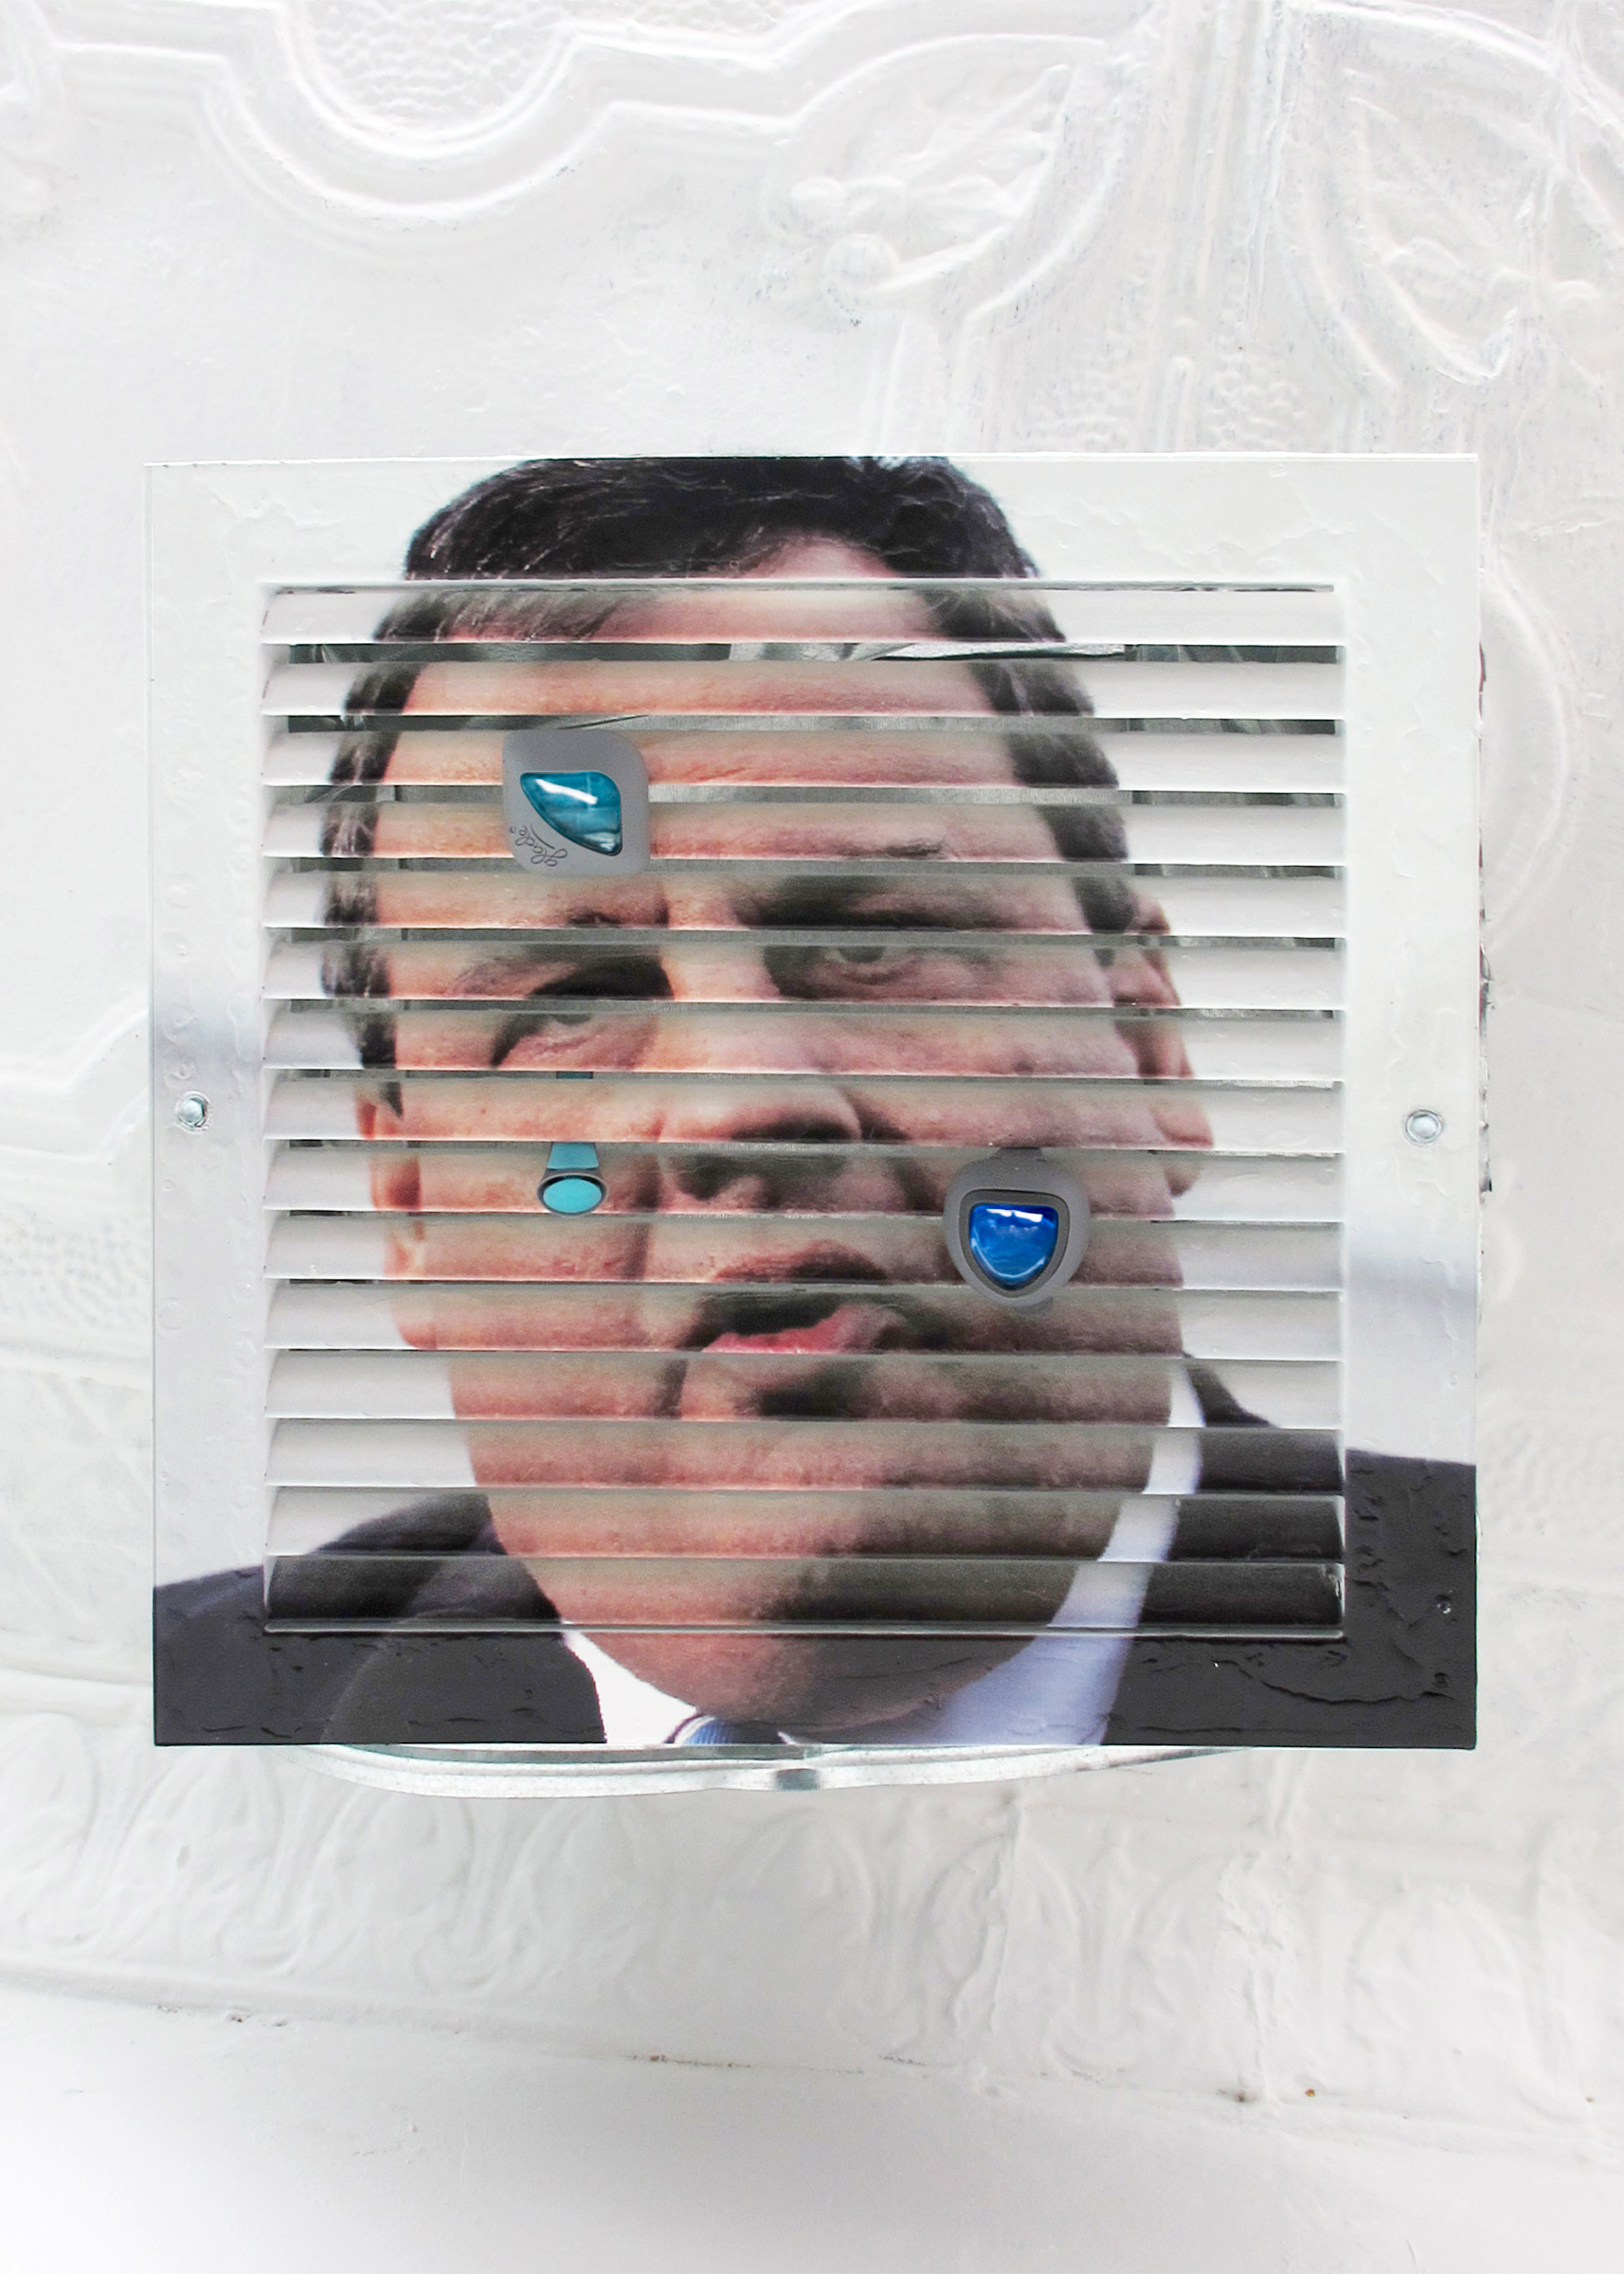 Michael Assiff,  HVAC (Chris Christie)  (detail), 2015, inkjet print and latex on powder coated steel, air fresheners, 11.75 x 13.75 x 16 in